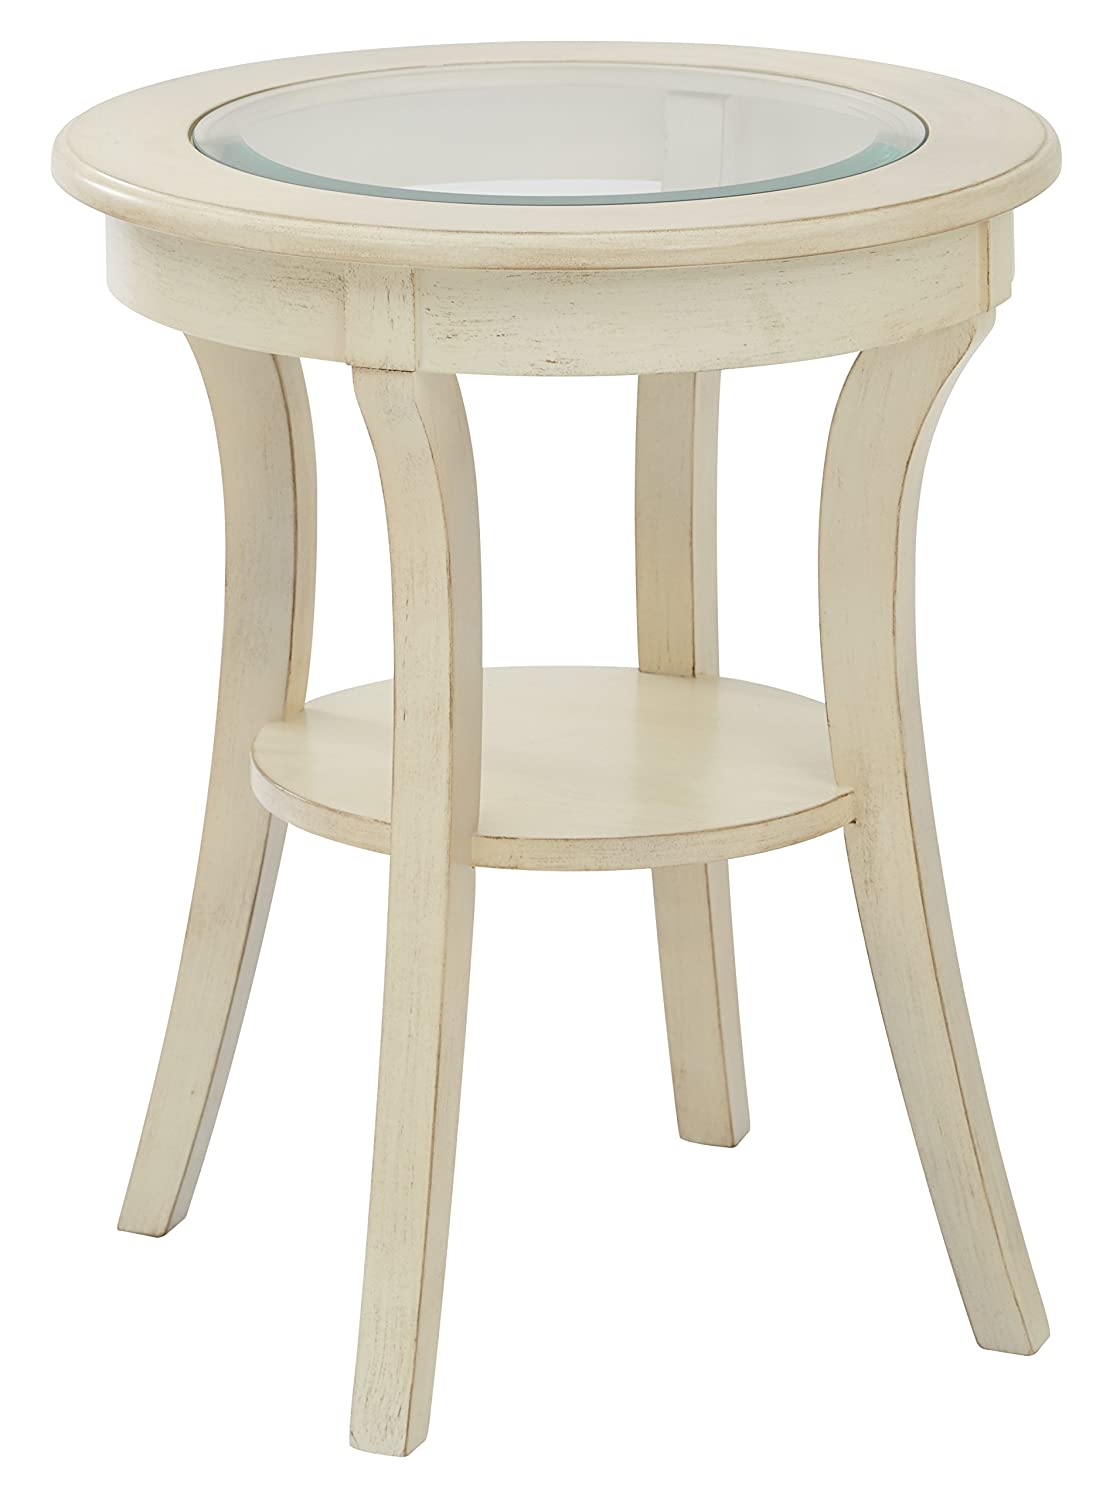 Amazon com office star harper hand painted round accent table with glass top antique white finish kitchen dining